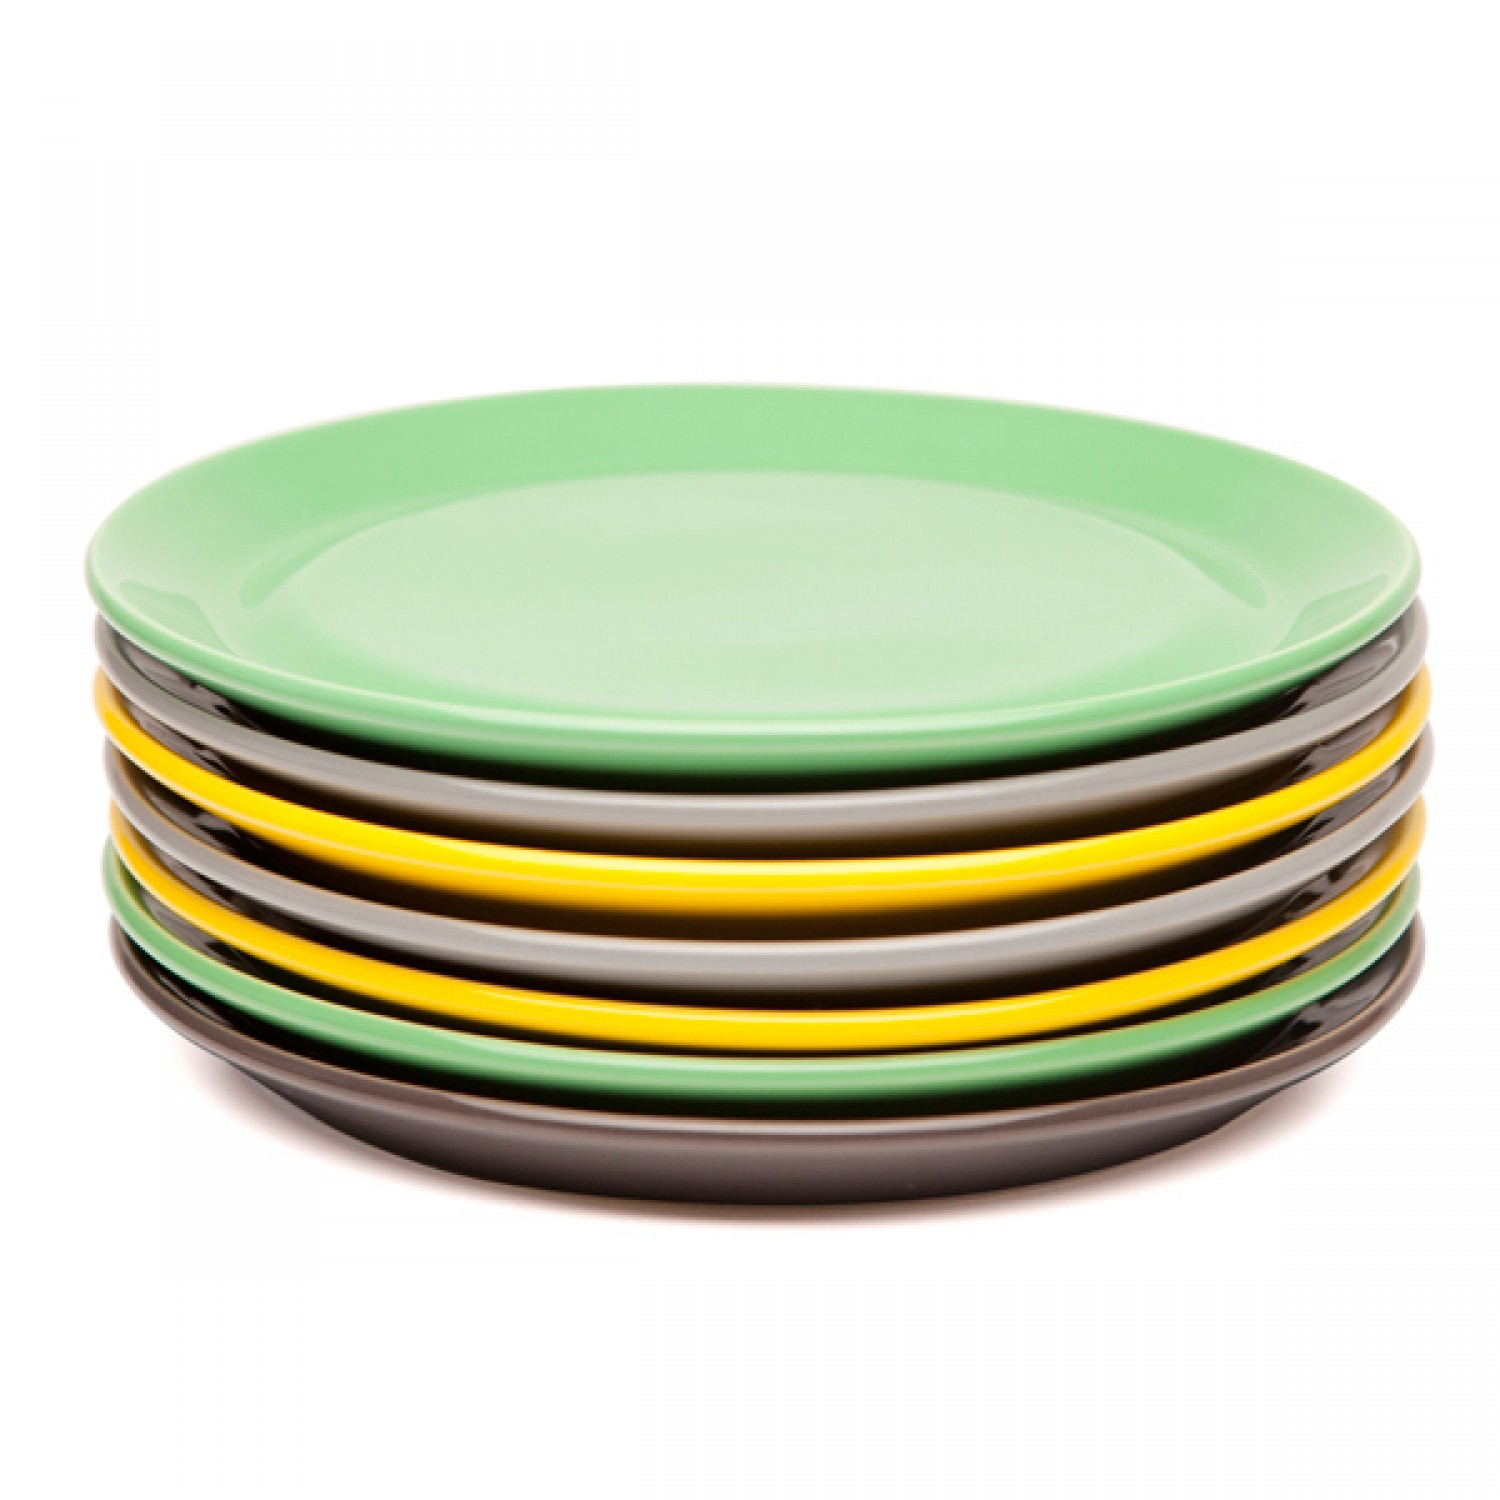 Plates Www Imgkid Com The Image Kid Has It